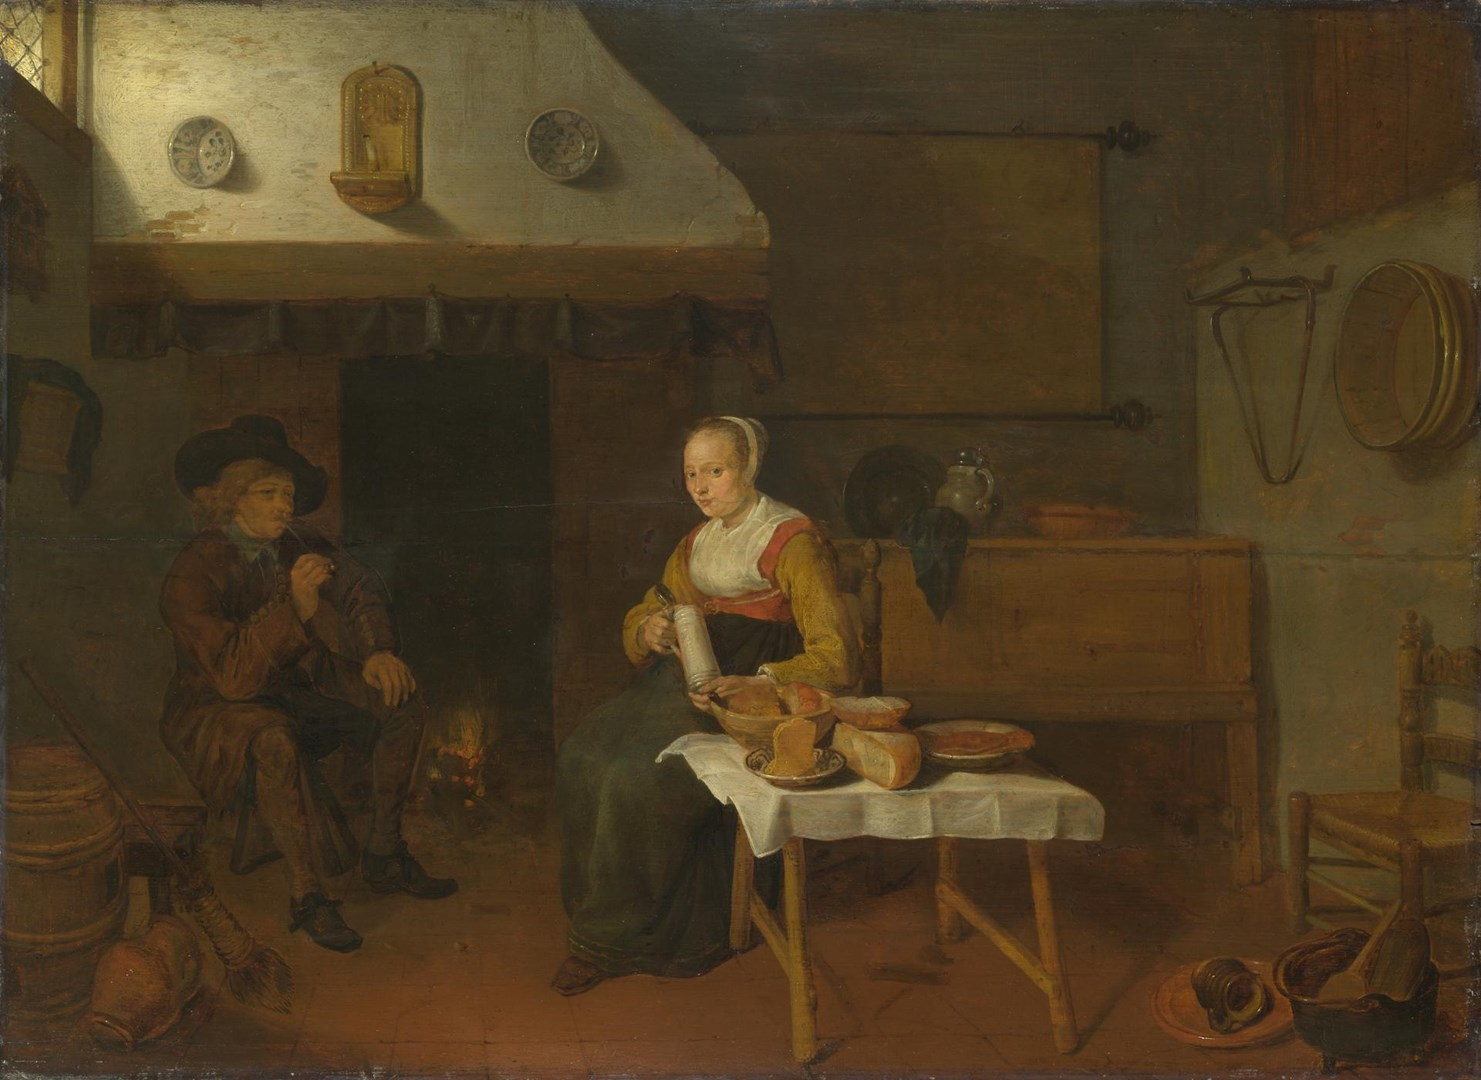 An Interior, with a Man and a Woman seated by a Fire by Quiringh van Brekelenkam